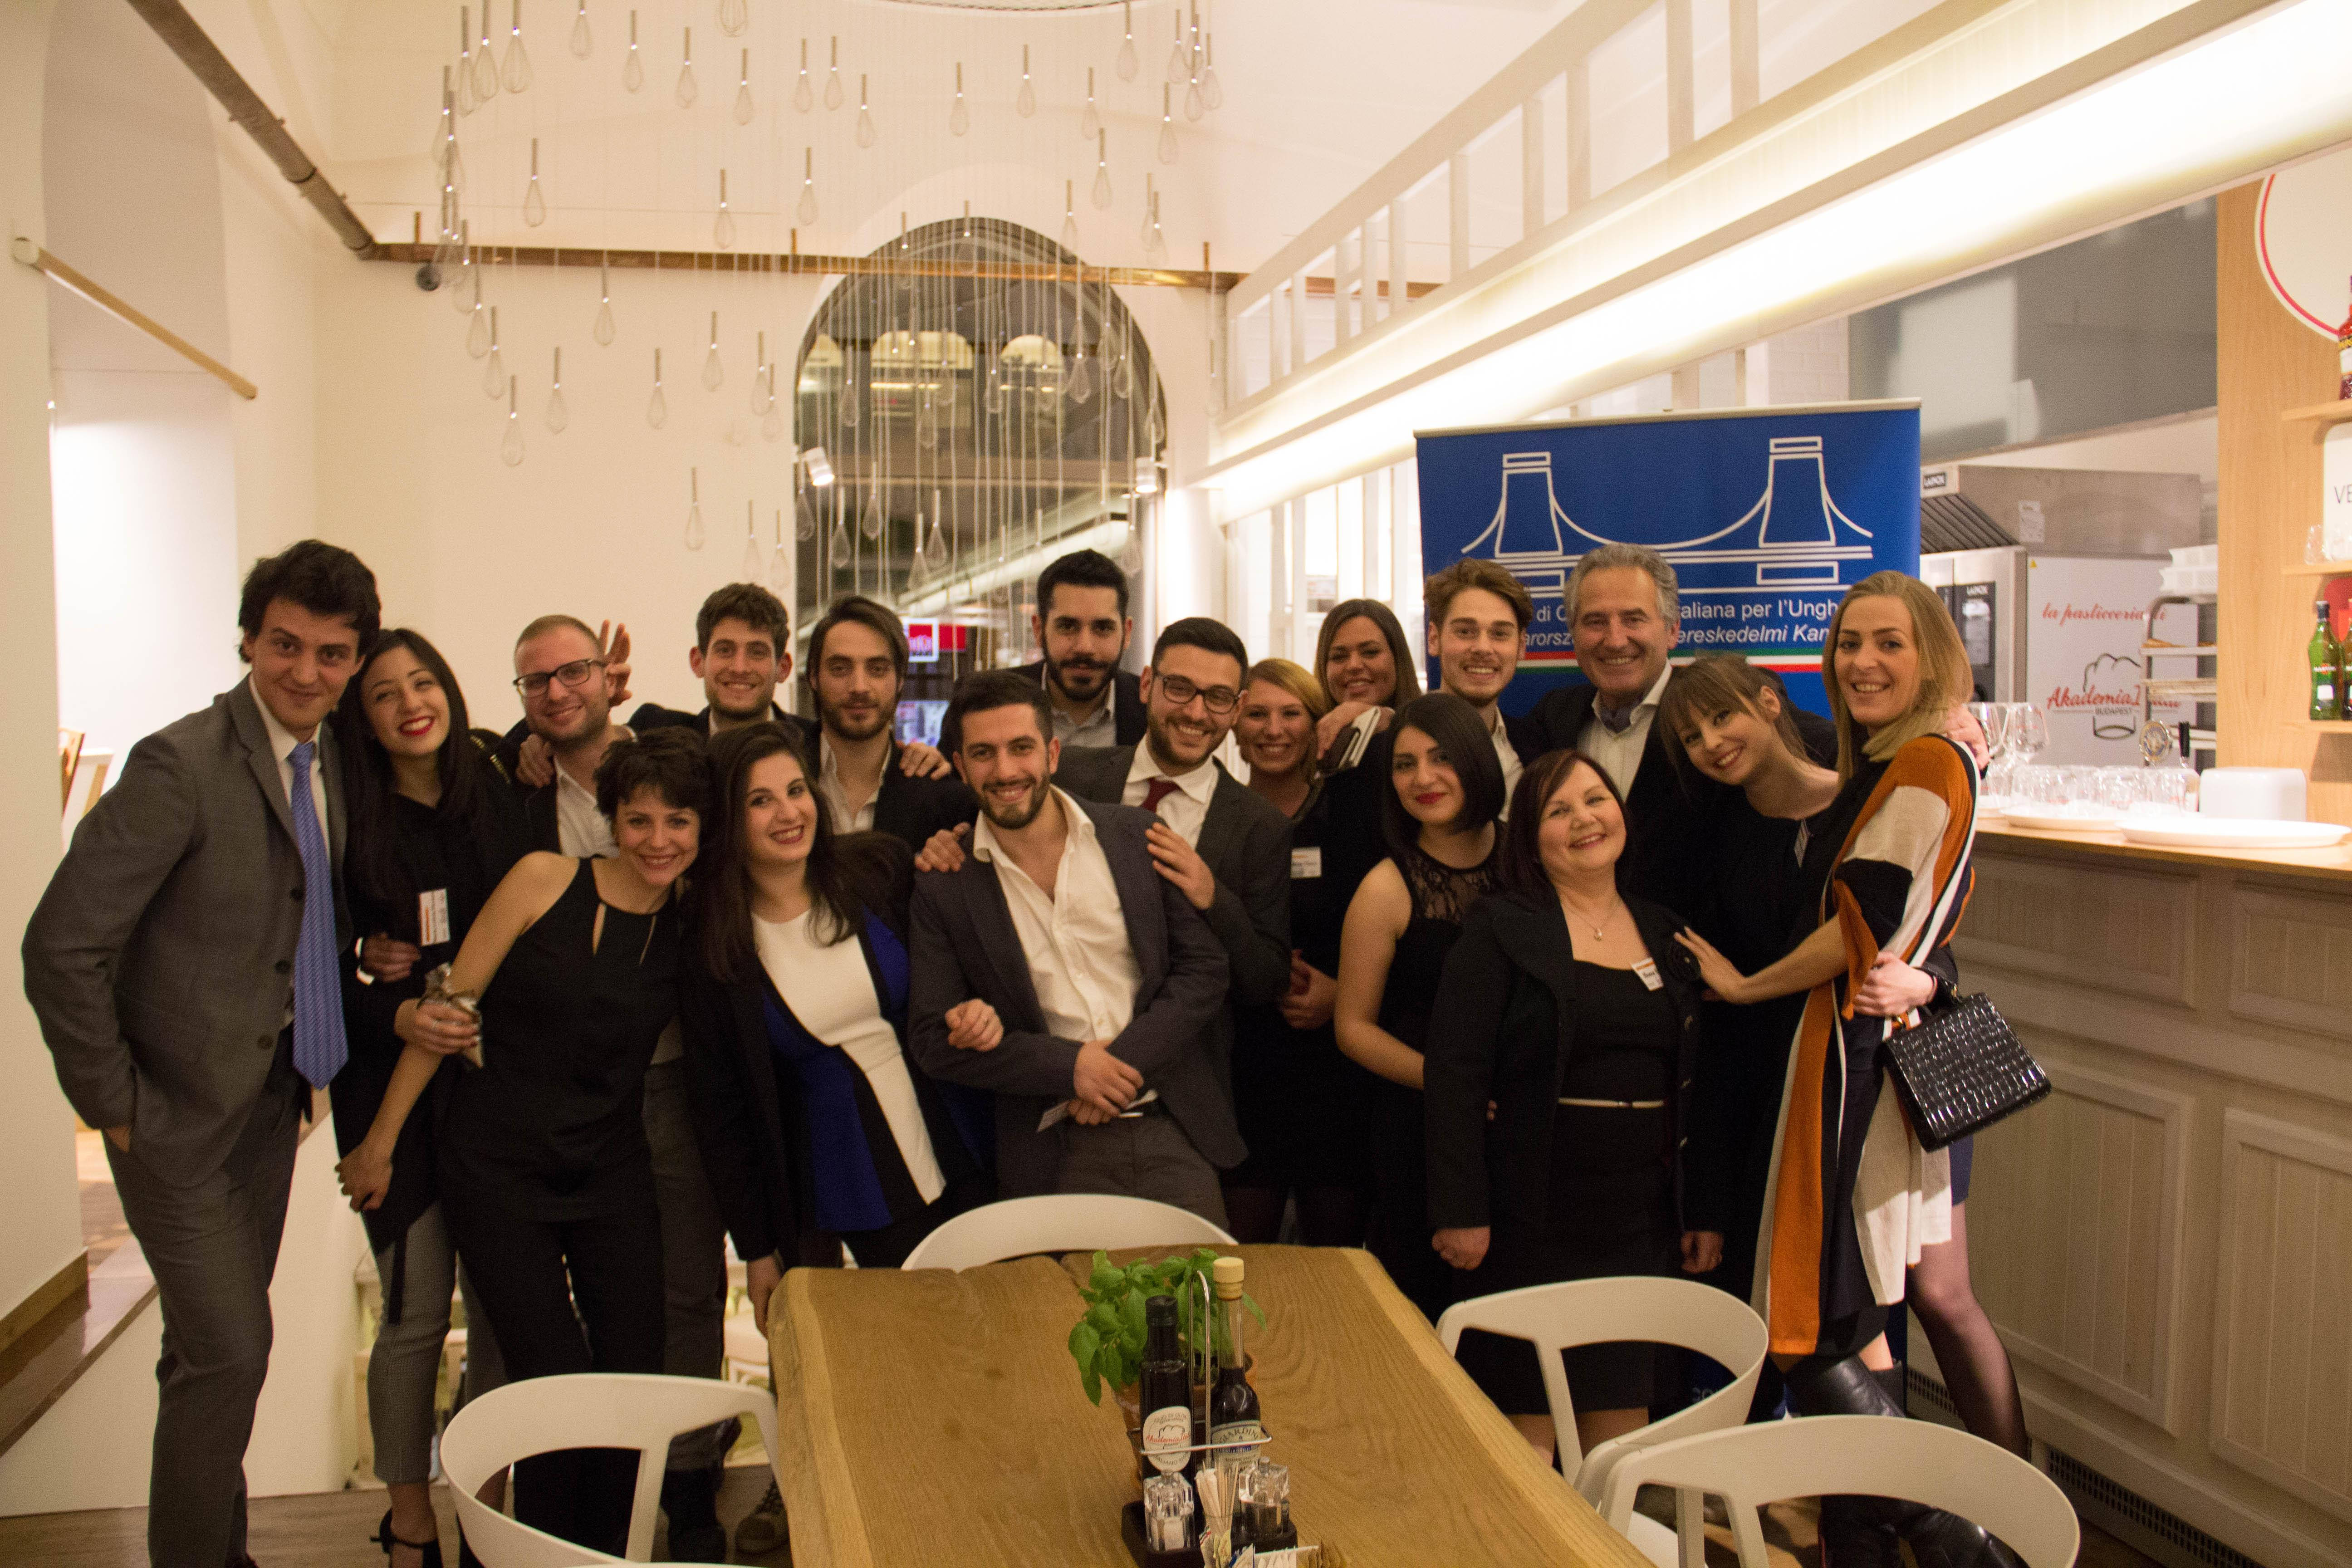 Xpat Report: The First Business Aperitif Of The Italian Chamber Of Commerce